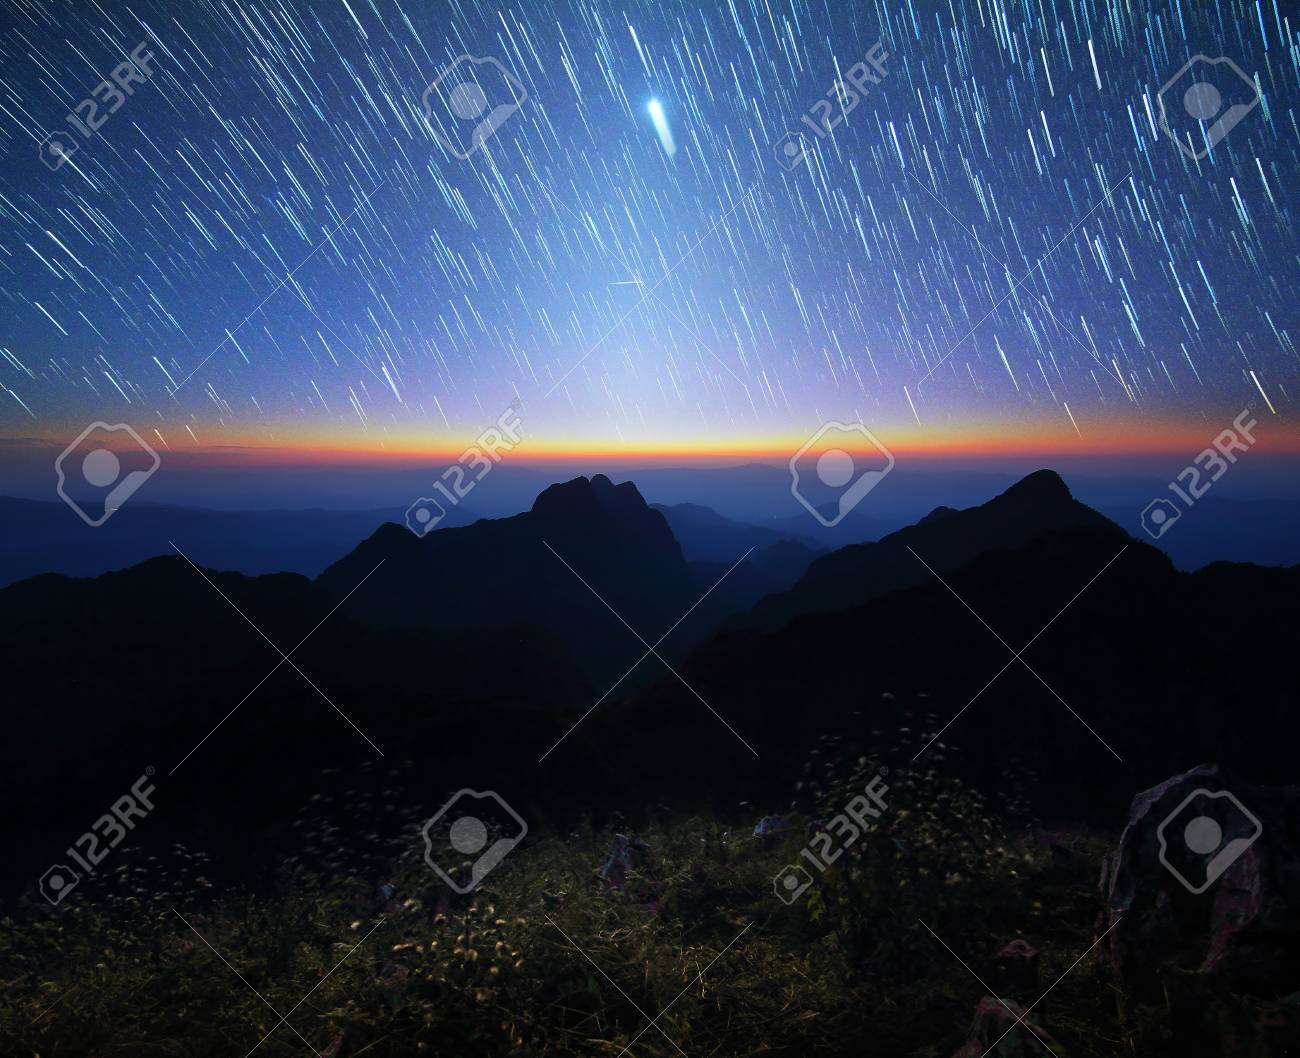 Beautiful Scenery Of The Startrail On Sky At Night Doi Luang Chiang Dao